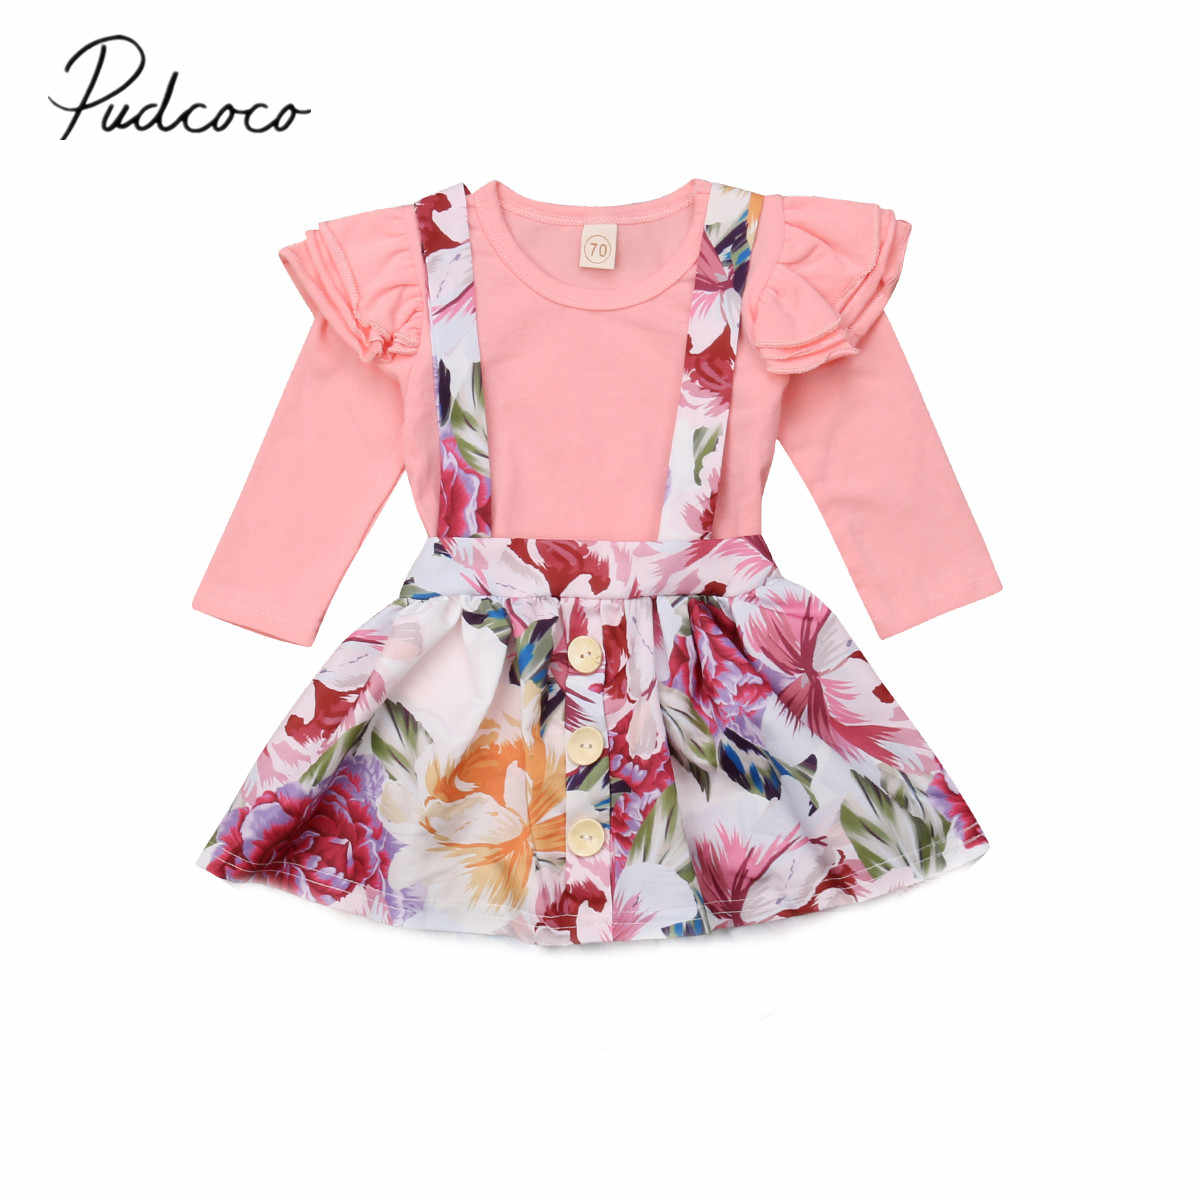 41efab942ea5d 2018 Brand New 0-24M Newborn Toddler Baby Girls Clothes Sets 2PCS Long  Sleeve Pink Jumpsuits Tops+Flowers Print Overalls Dress